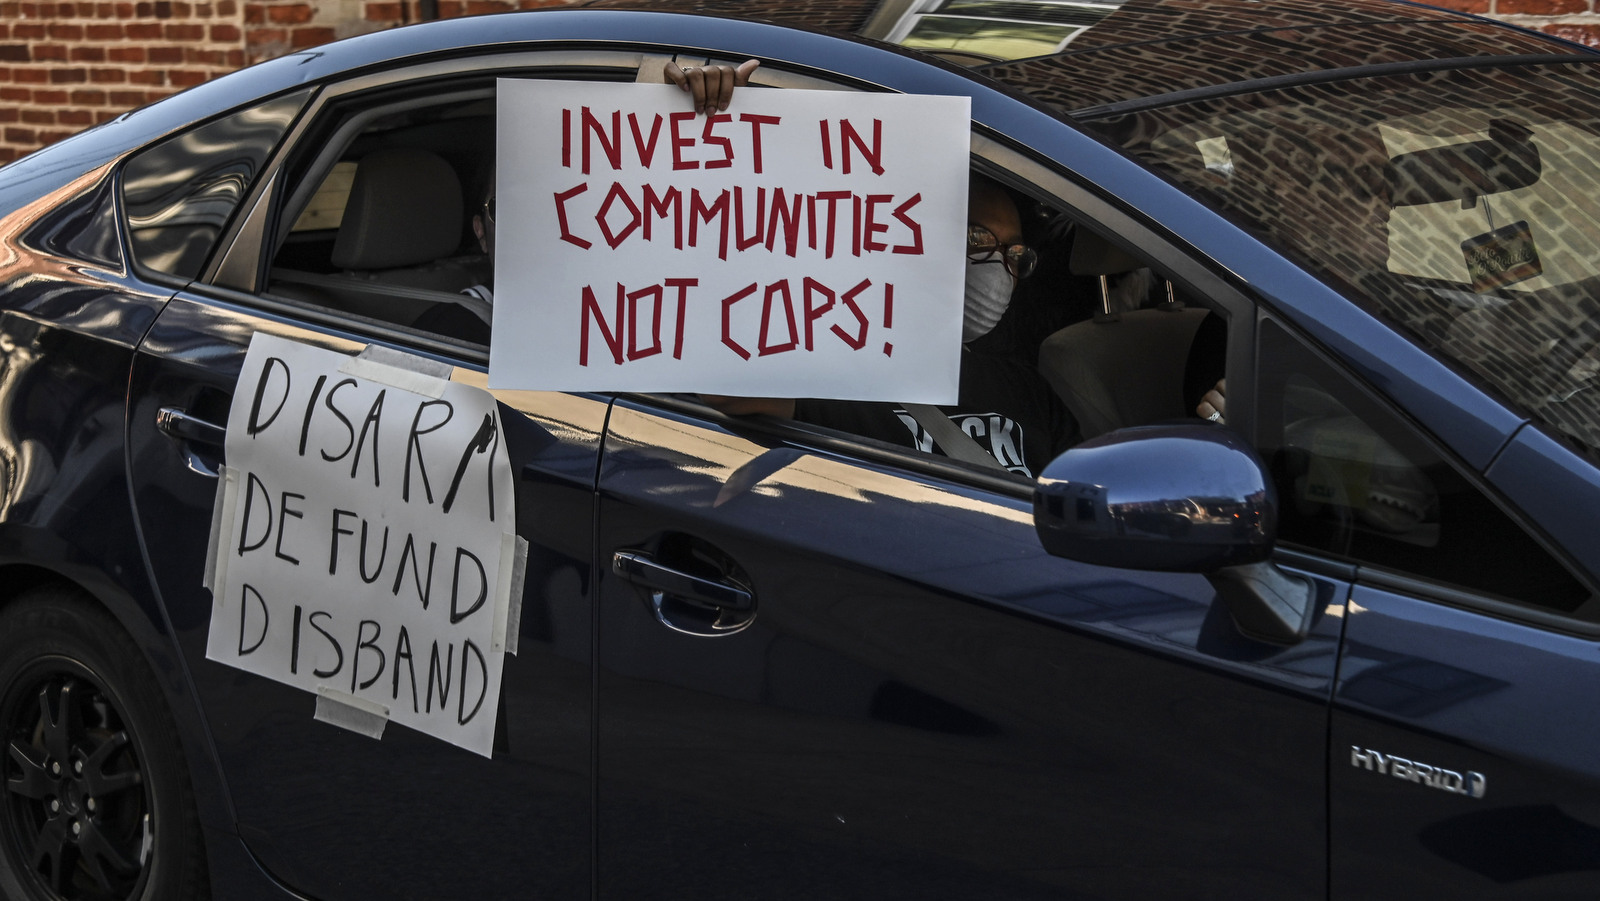 Part of an hourlong protest caravan outside the home of City Councilman Eric Costello. (J.M. Giordano)